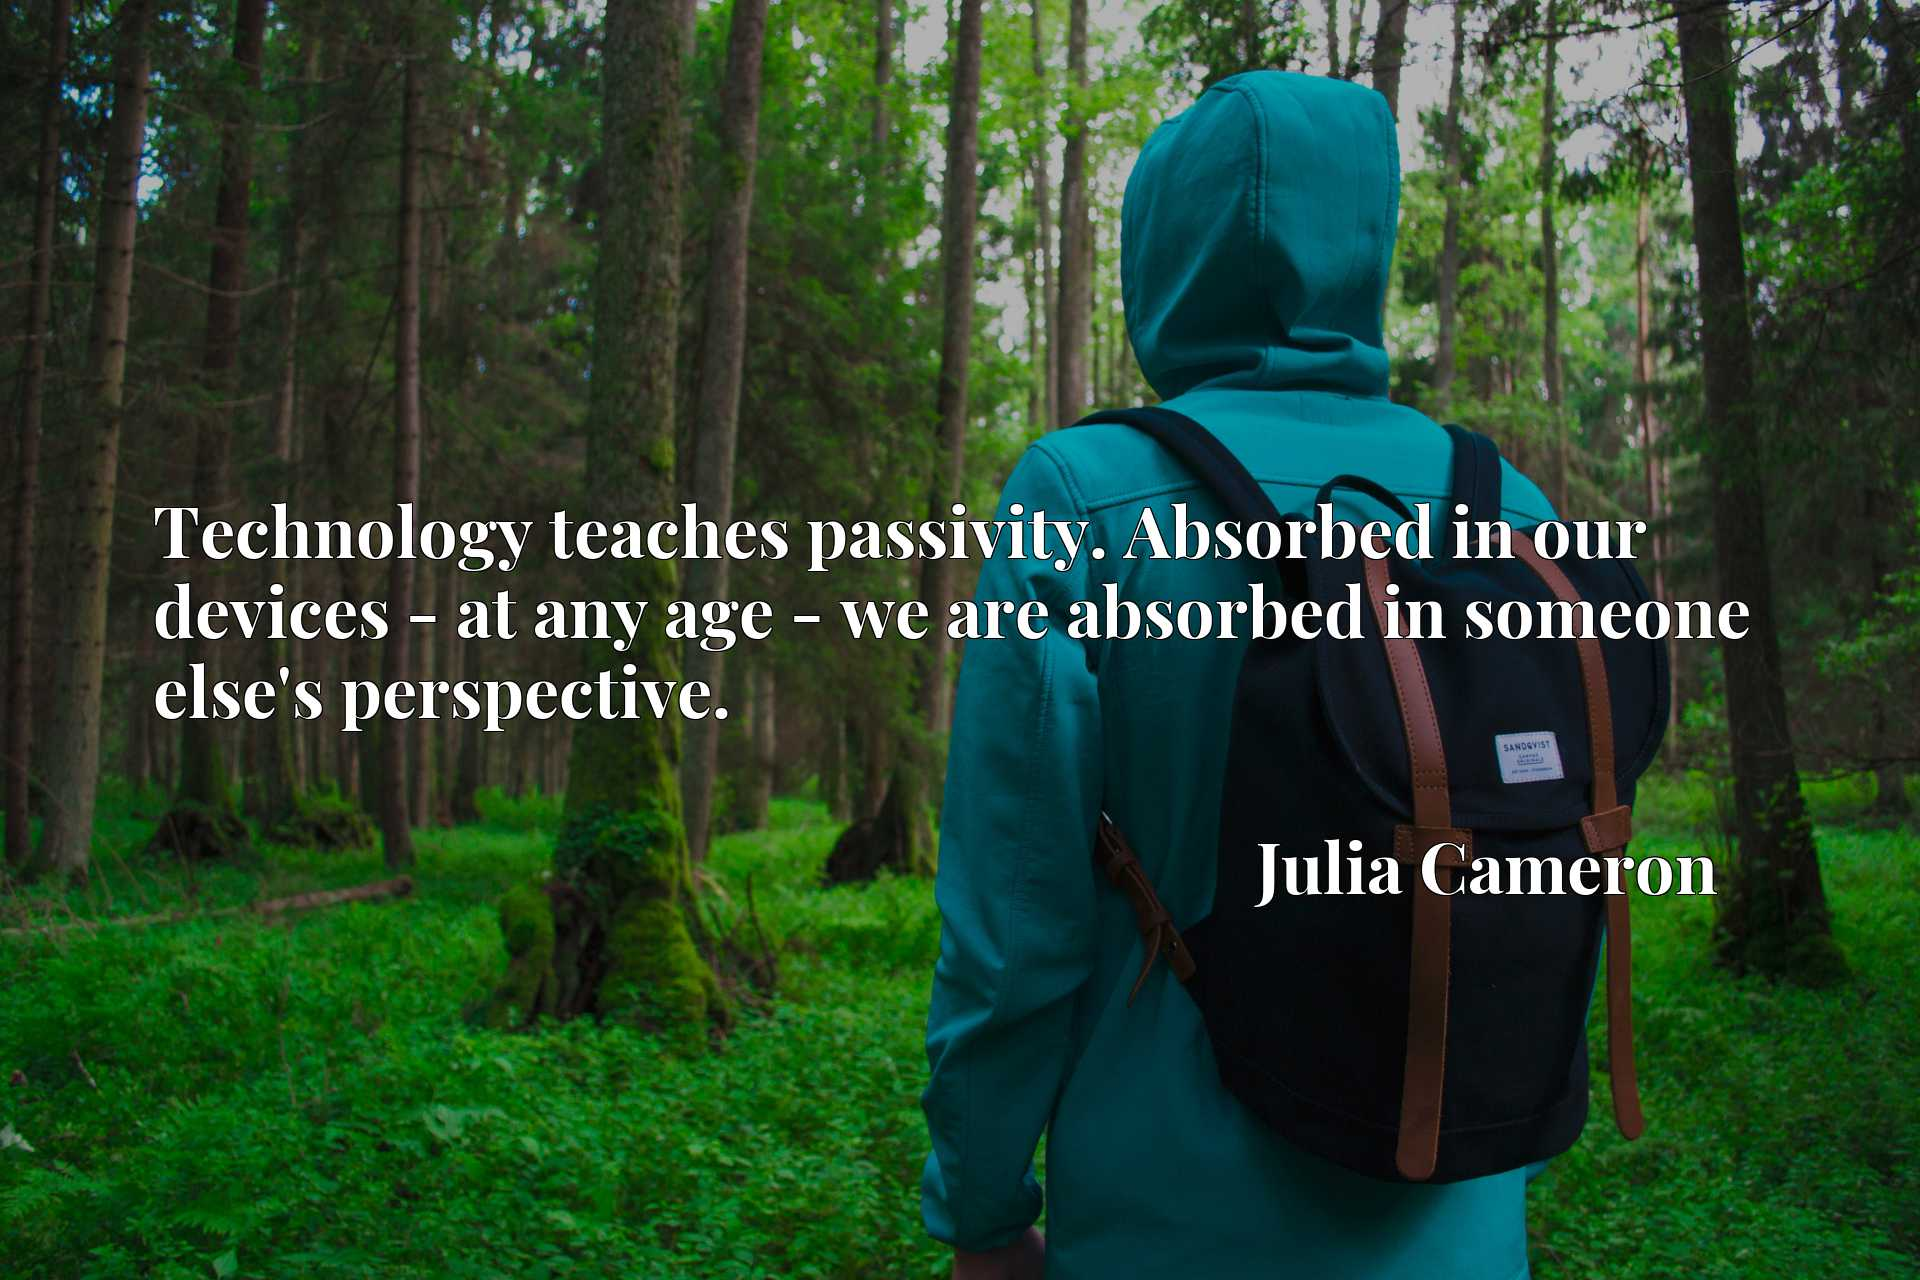 Technology teaches passivity. Absorbed in our devices - at any age - we are absorbed in someone else's perspective.